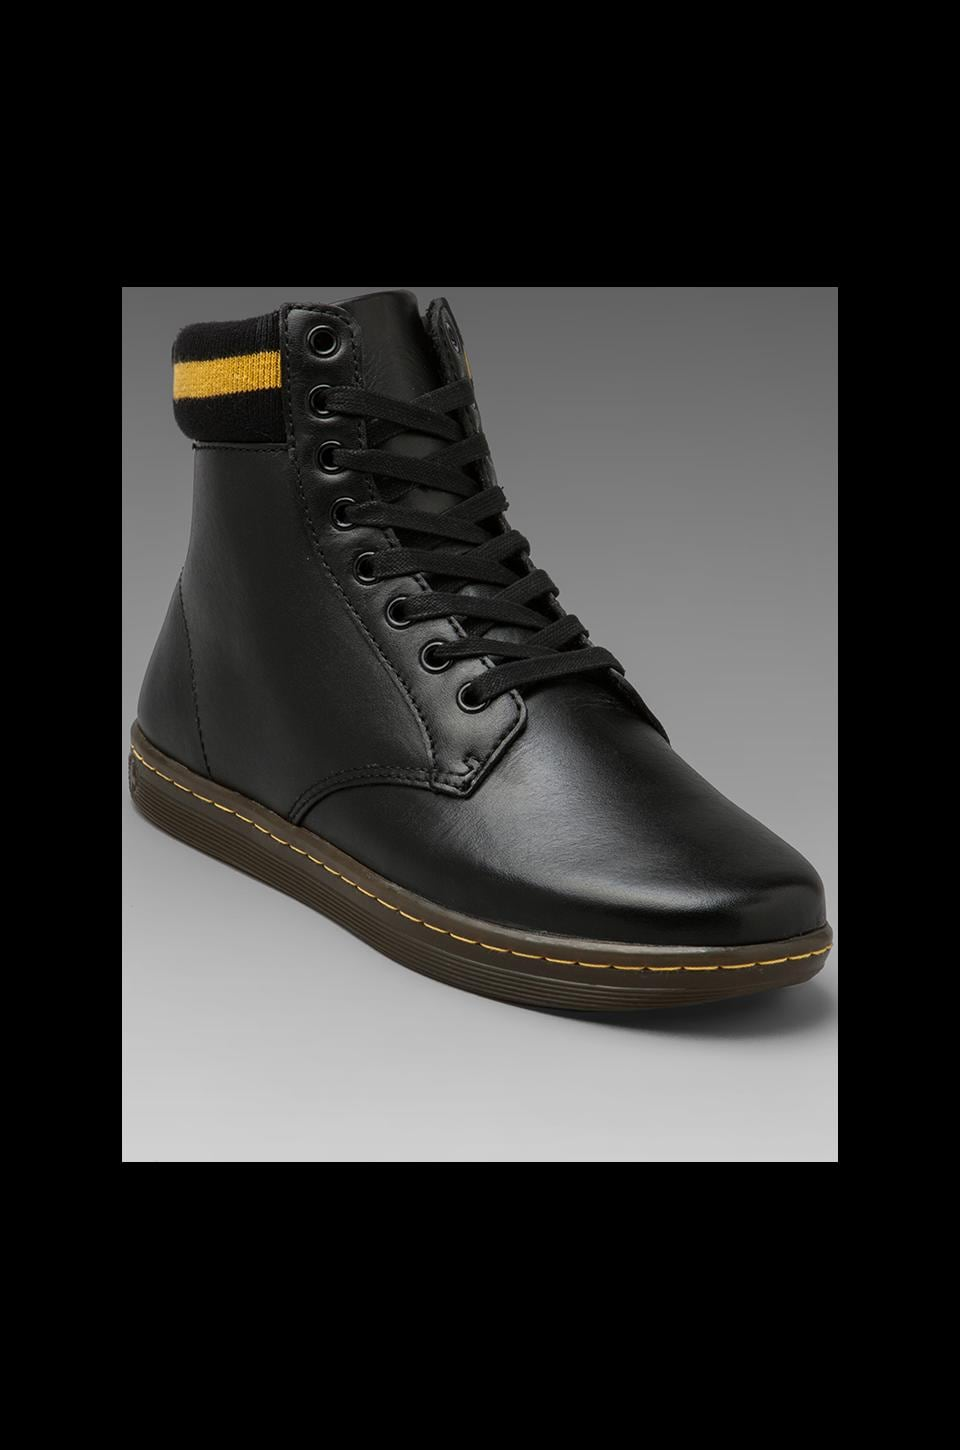 Dr. Martens Martin 8-Eye Cuff Boot in Black